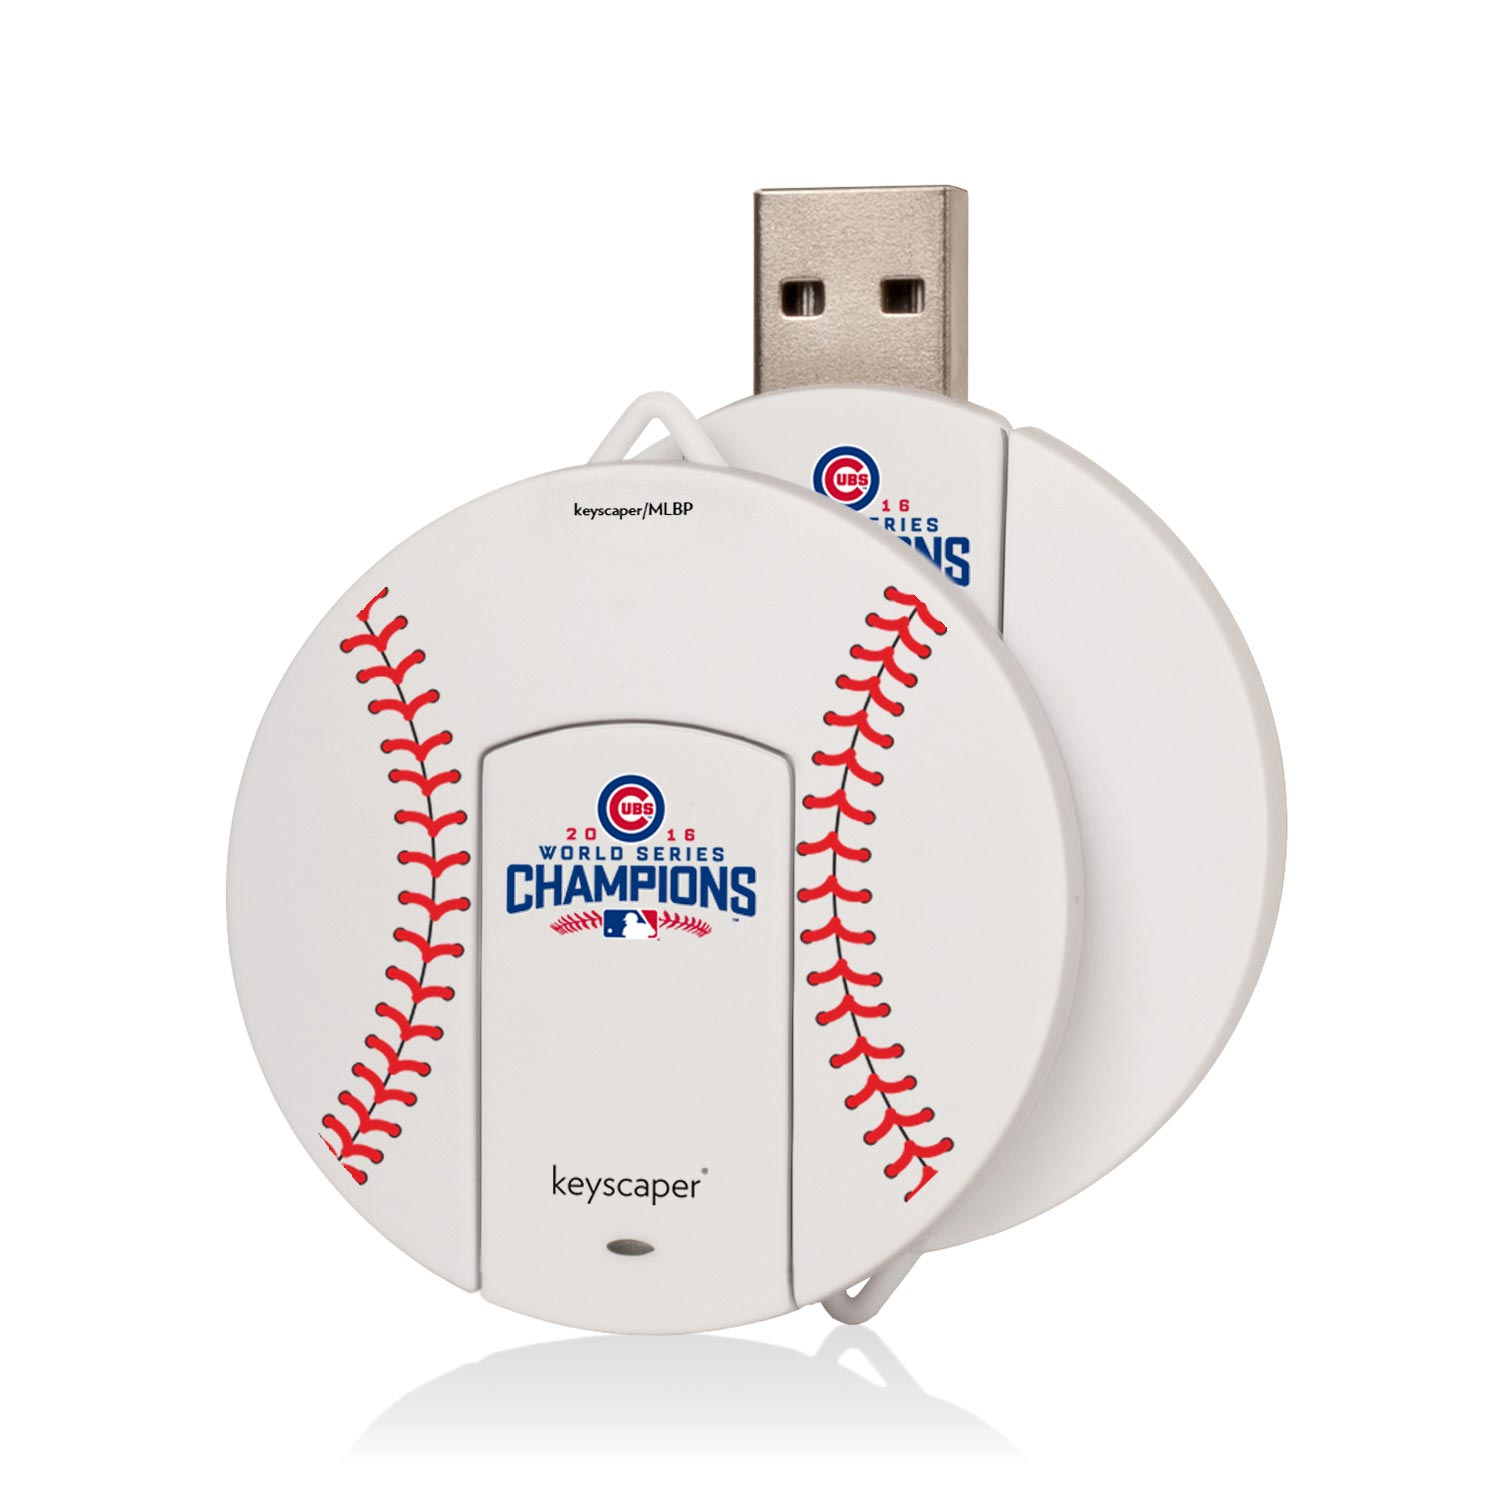 Chicago Cubs 2016 World Series Champions 8GB Round USB Drive - No Size